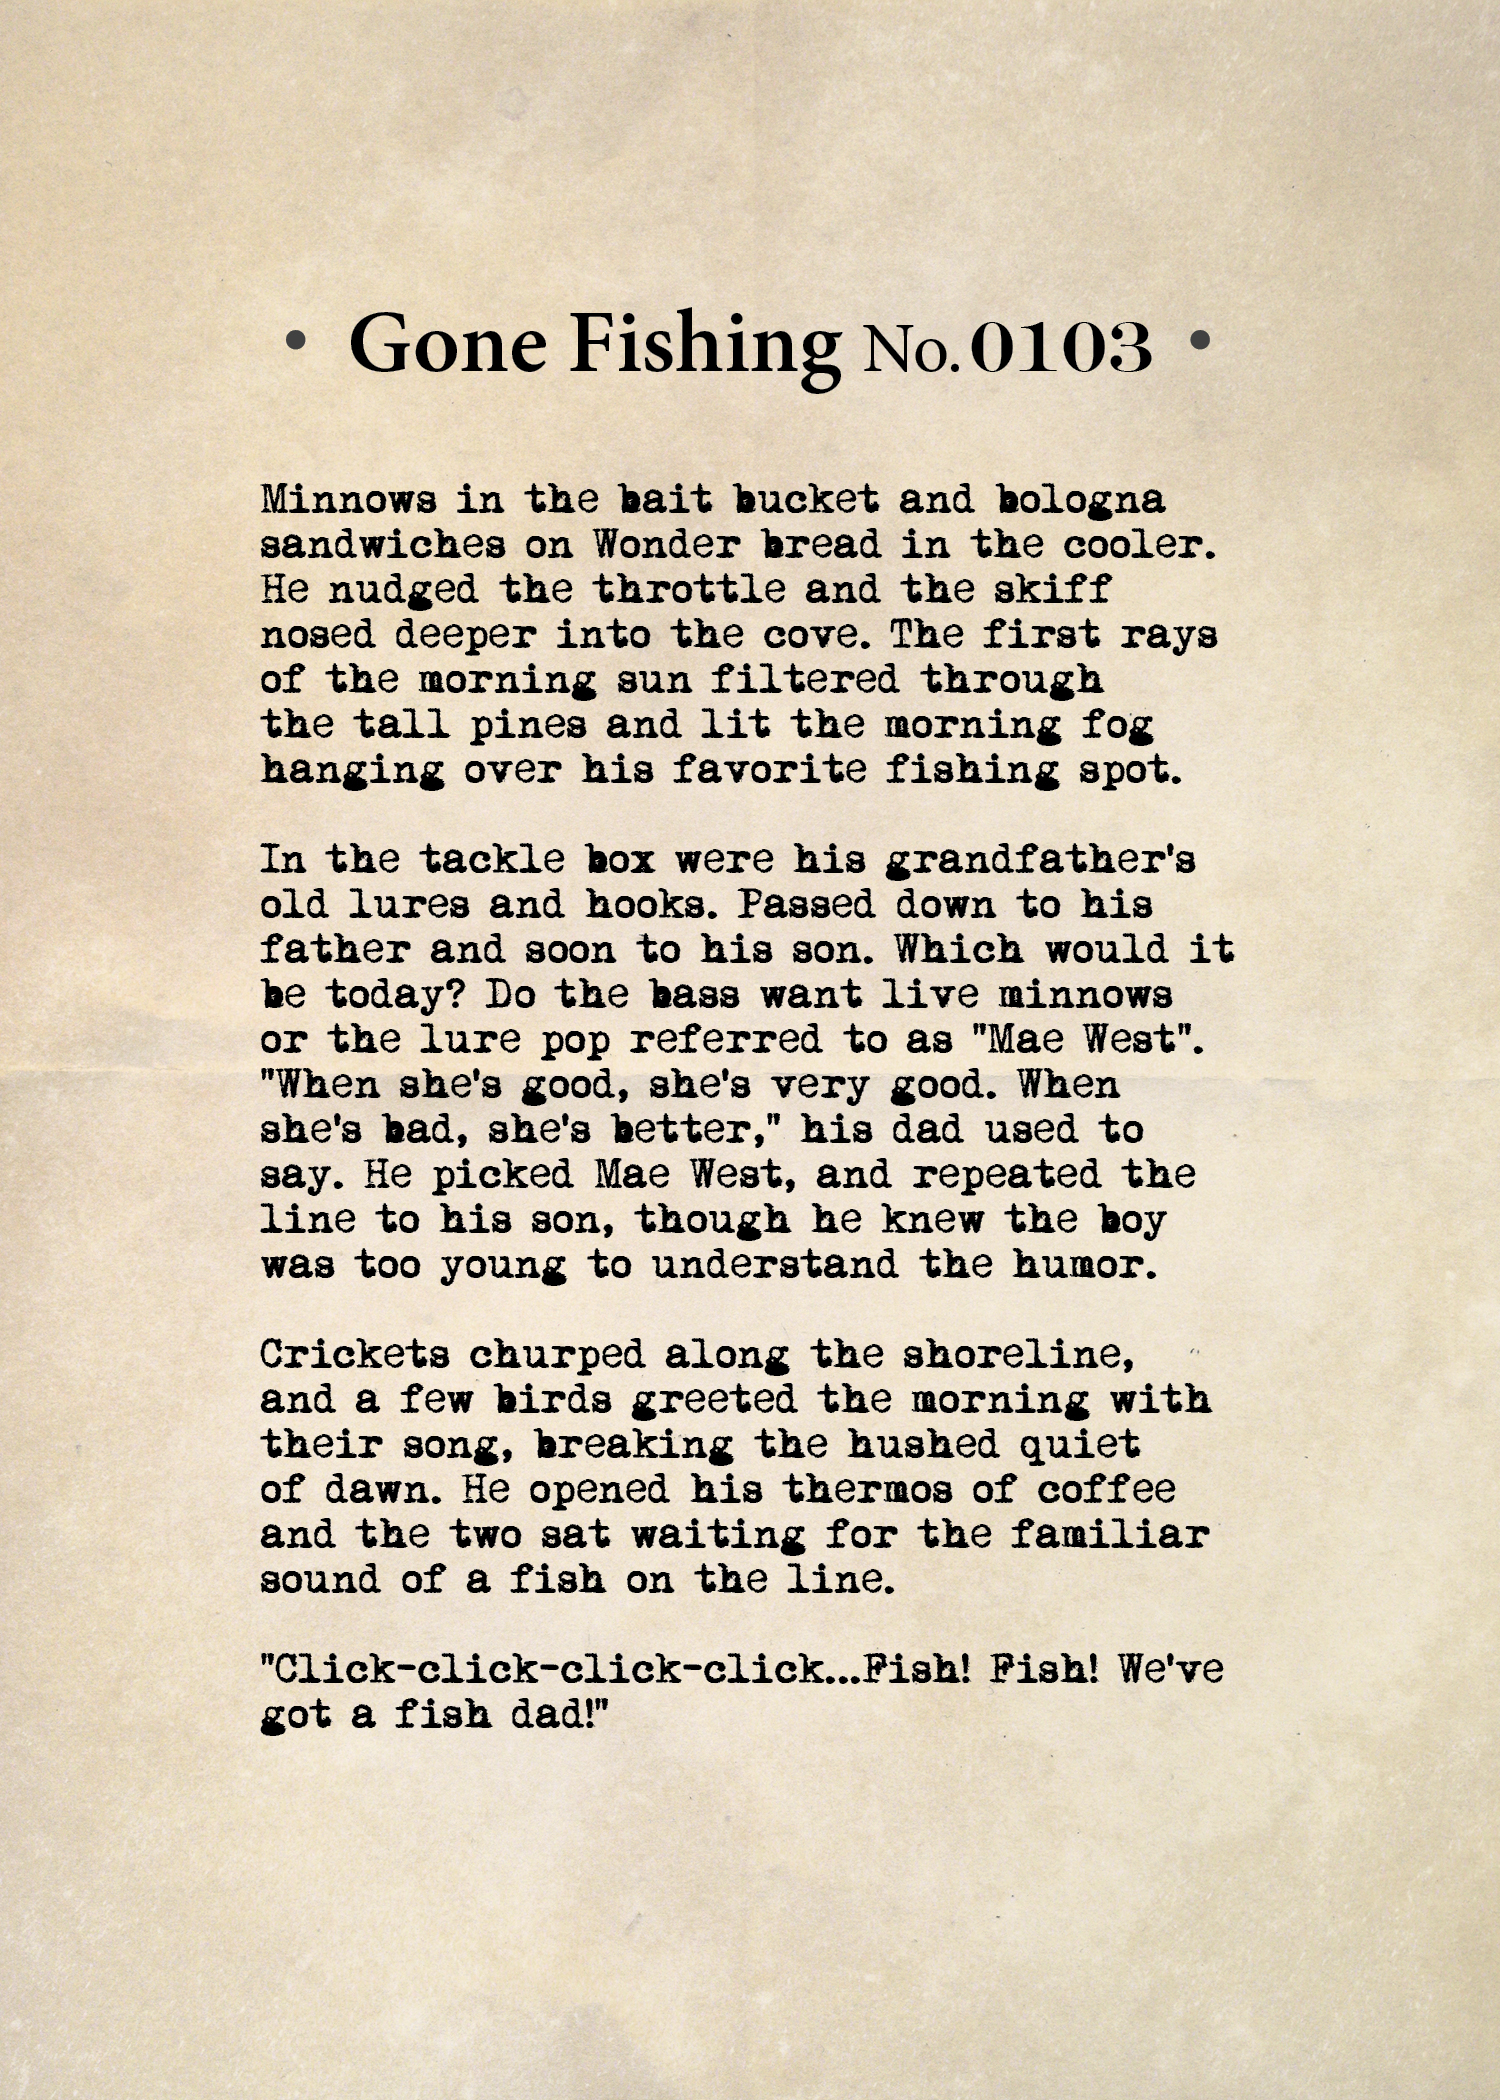 Gone Fishing No. 0103